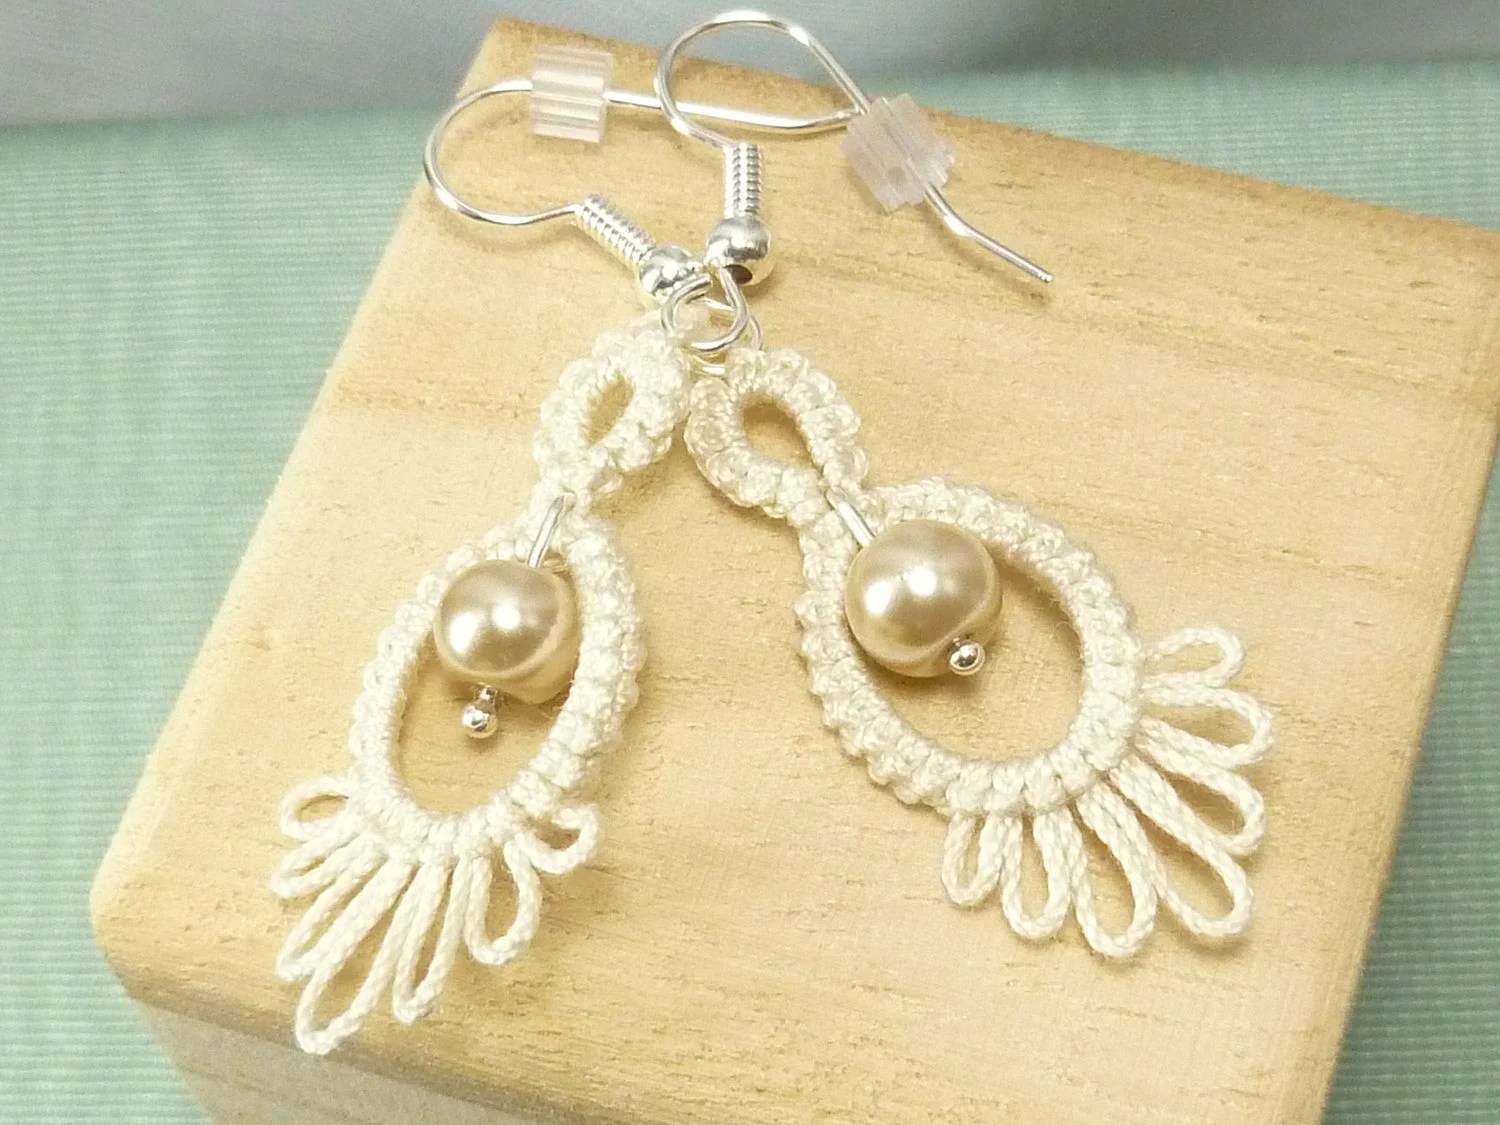 Tatted Lace Earrings in creamy white with glass pearls -Frilly Drips -MTO